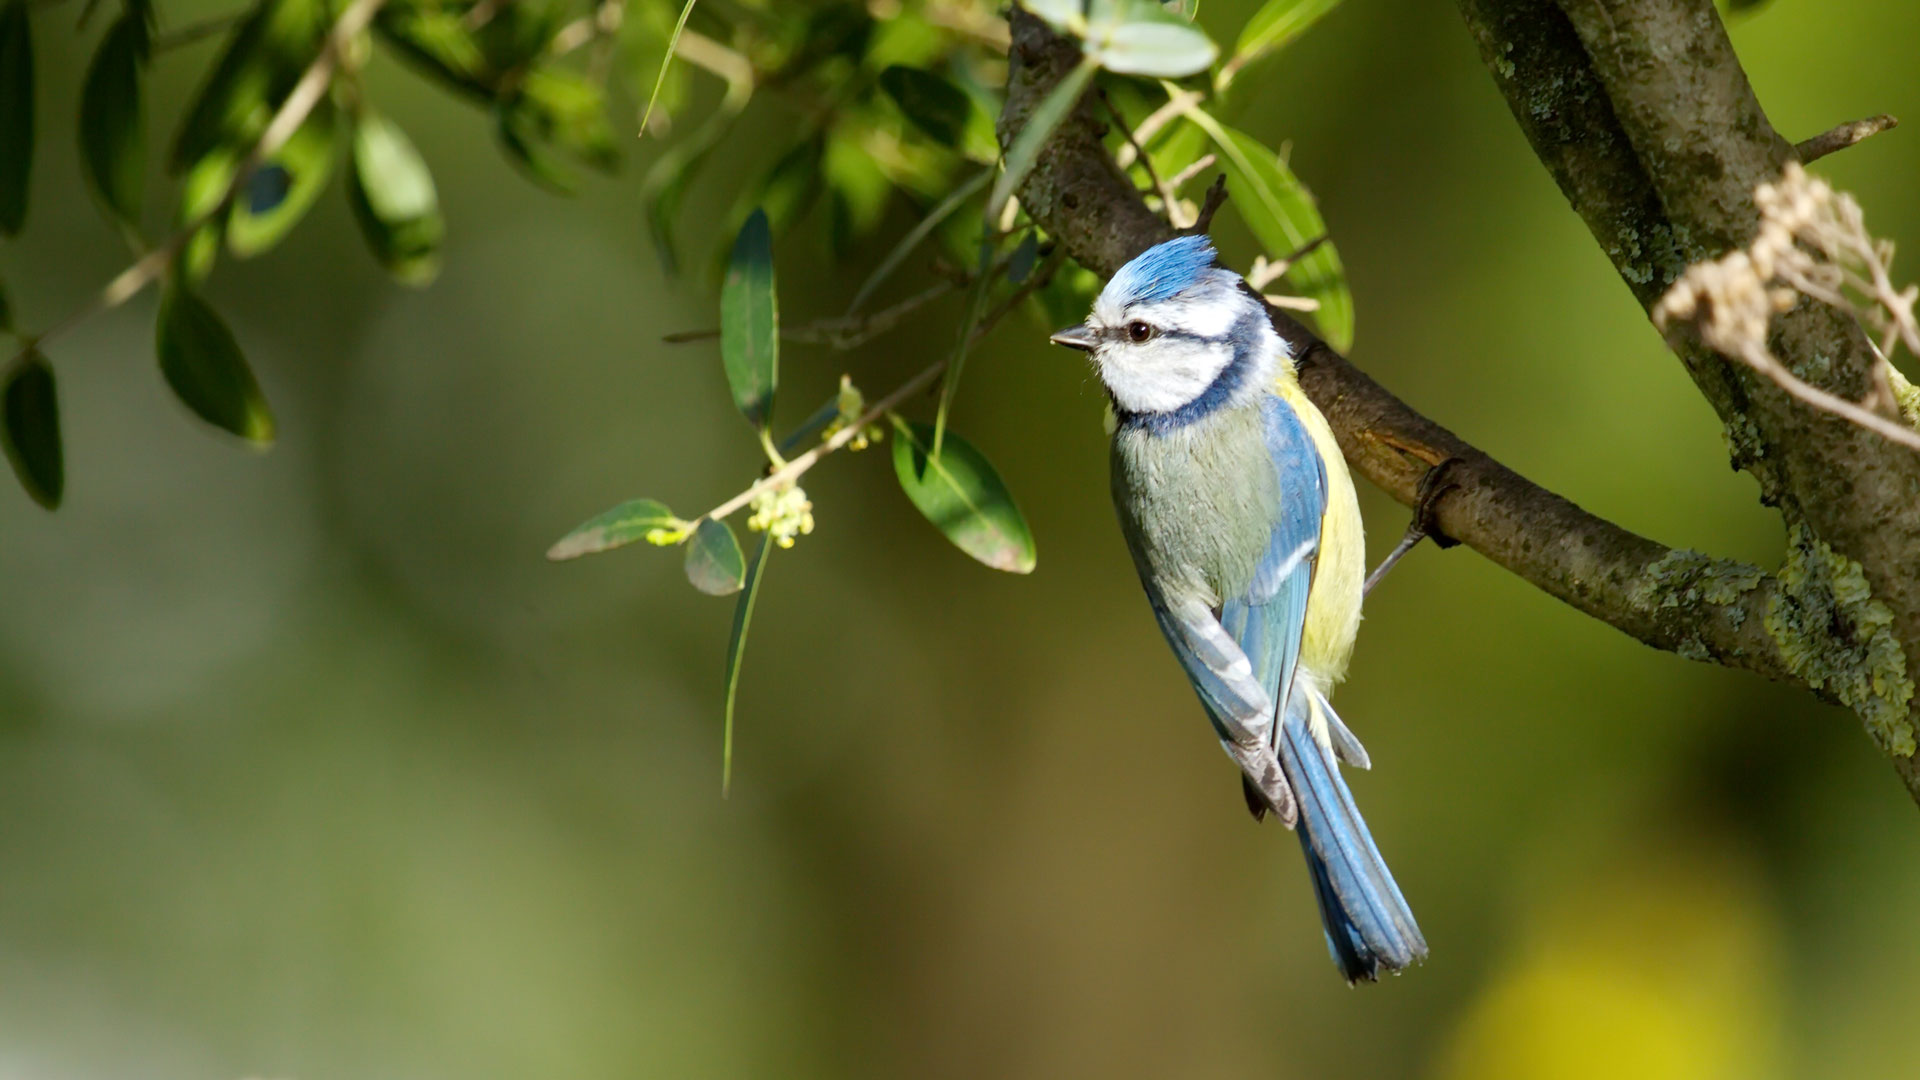 Eurasian blue tit (cyanistes or parus caeruleus) perched on a branch and looking aside by sunset